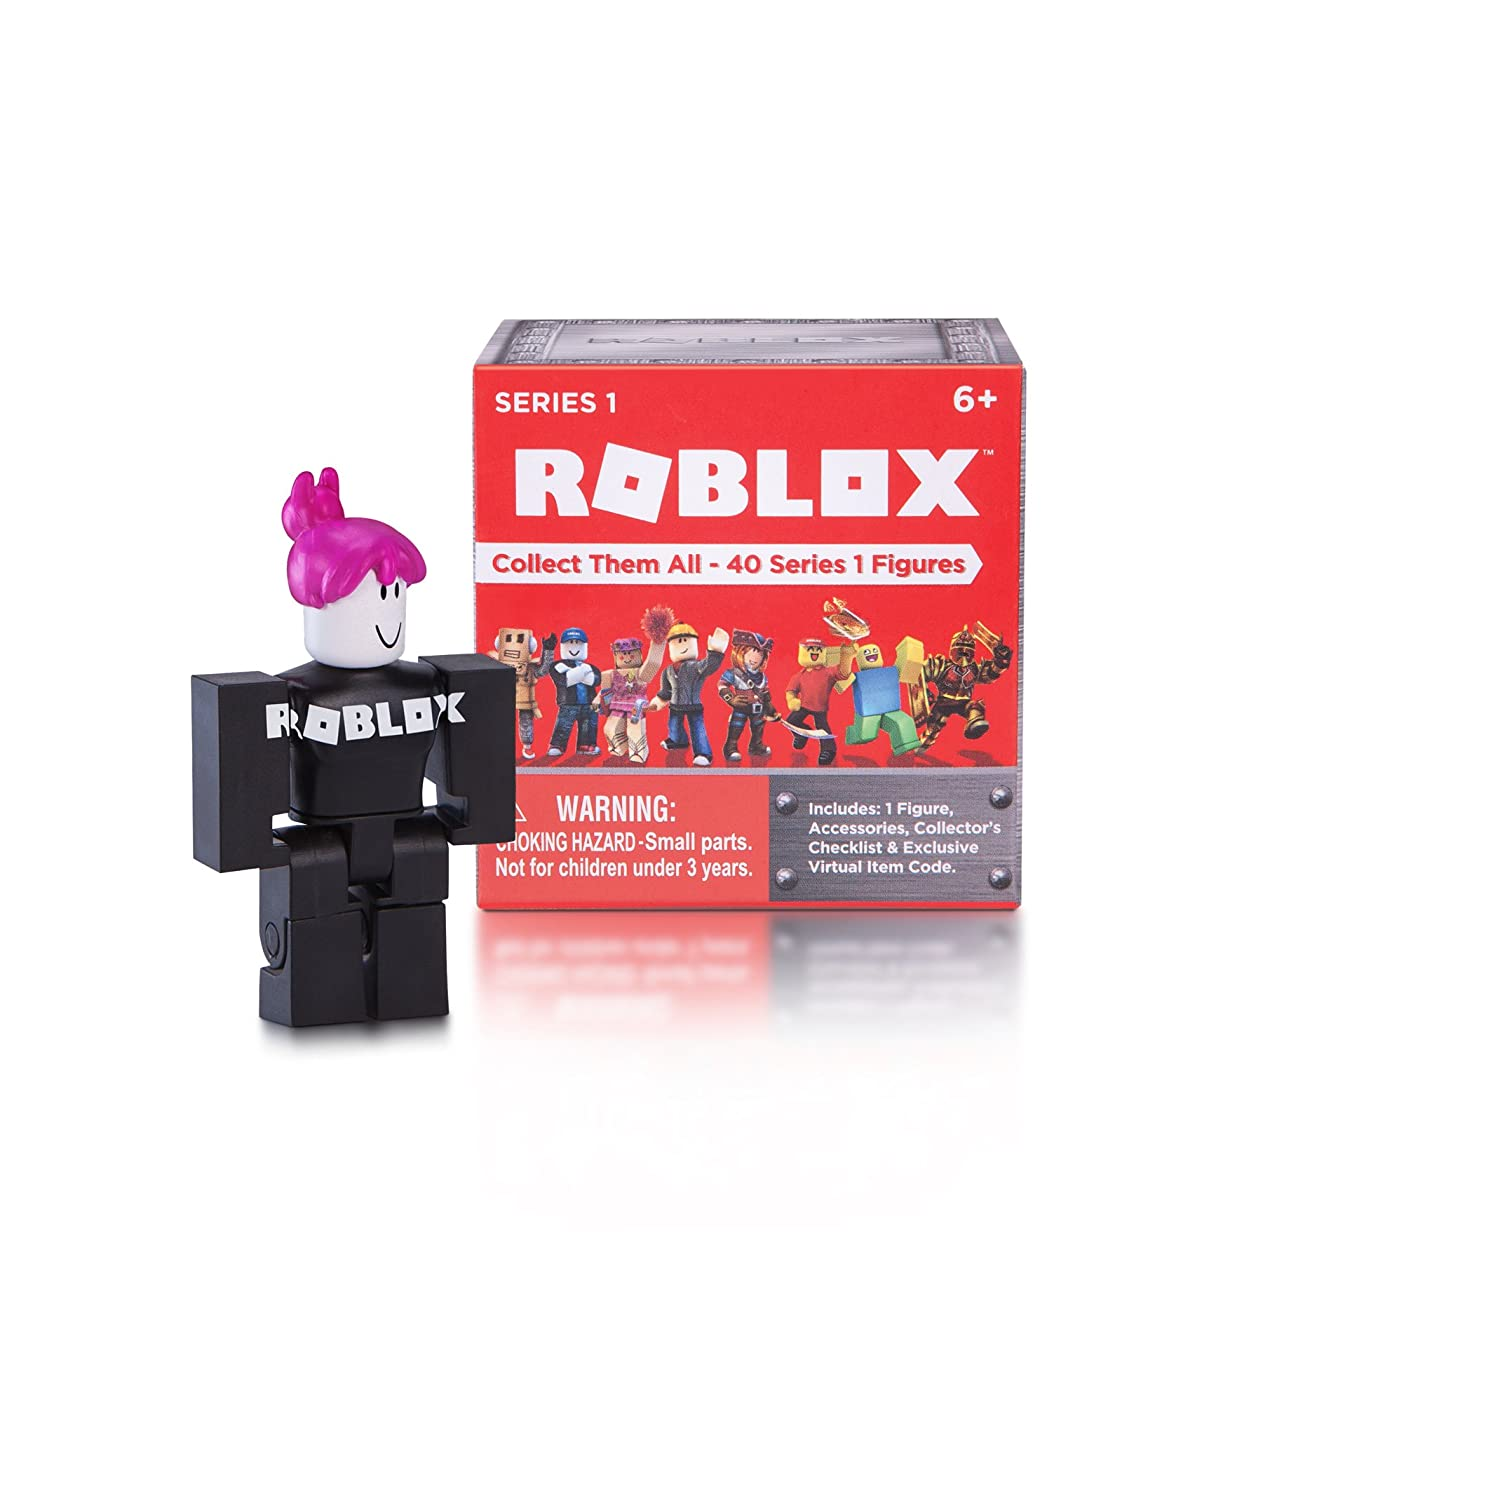 Amazoncom Roblox Series 1 Action Figure Mystery Box Toys Games